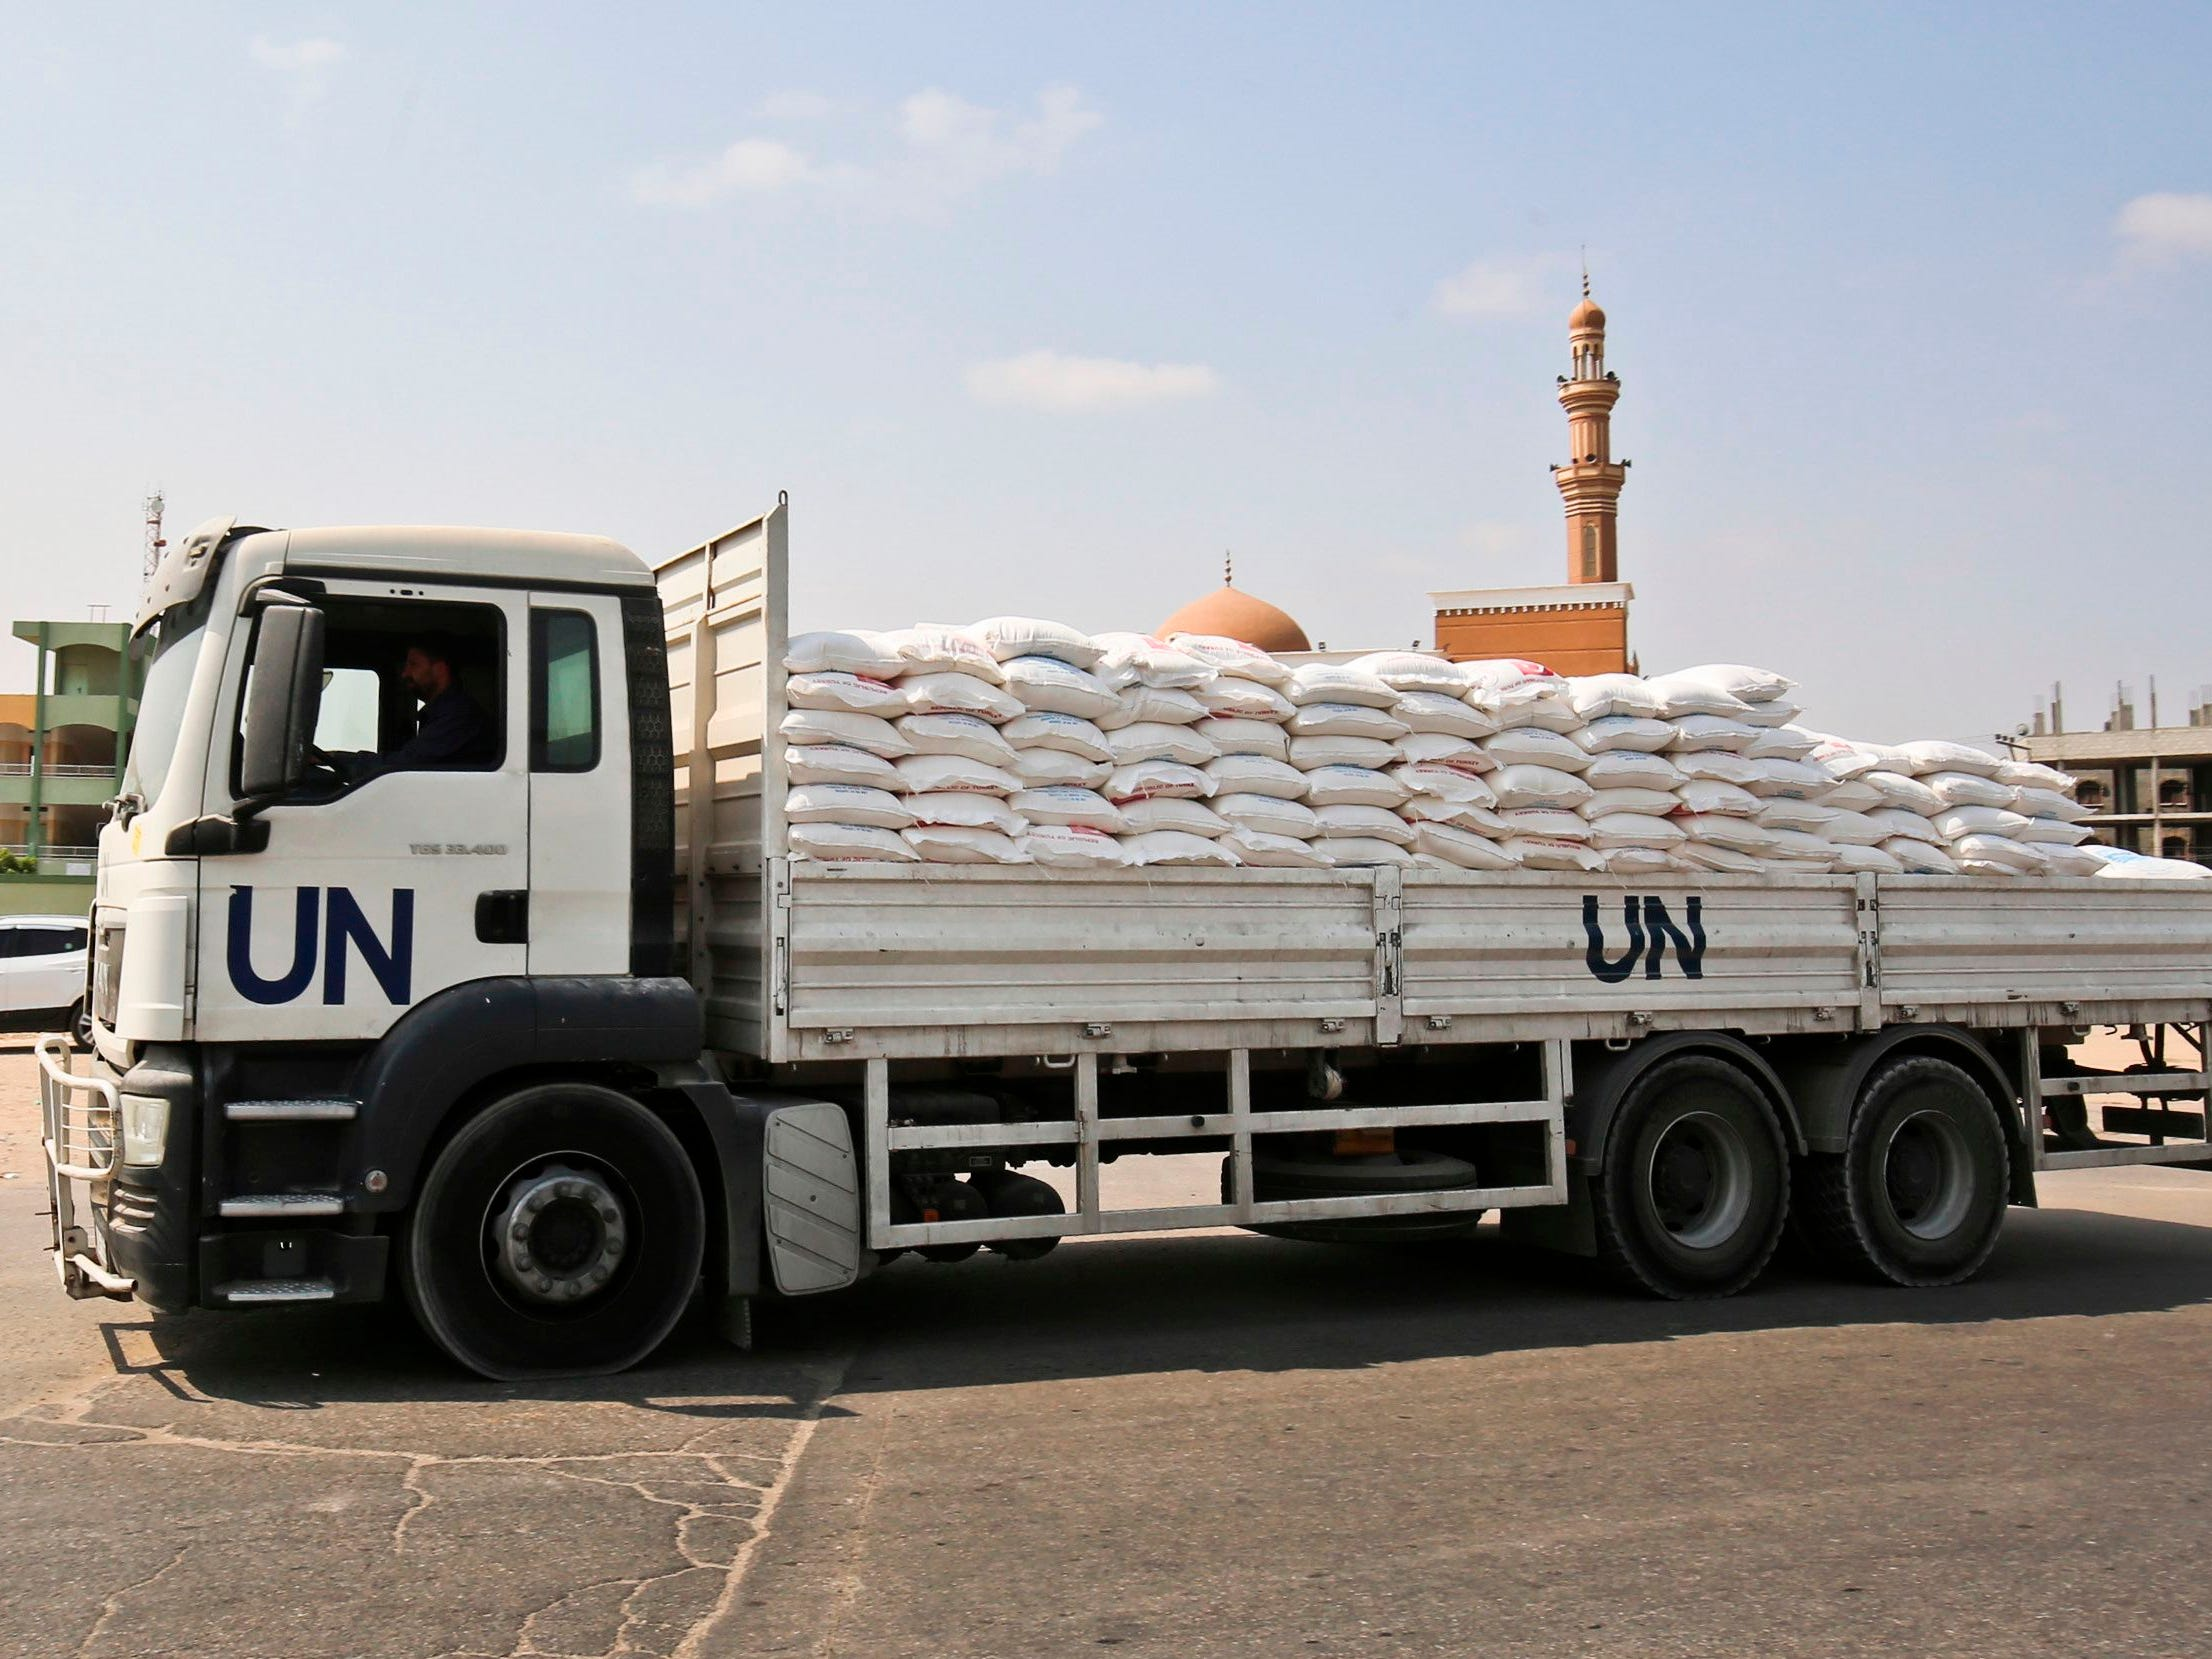 "A UN truck transports sacks of flour outside a United Nations' compound at the Rafah refugee camp in the southern Gaza Strip on September 1, 2018. - The United States announced it was halting funding for the United Nations' agency for Palestinian refugees after declaring the organisation was ""irredeemably flawed. Washington has long been the UN Relief and Works Agency's (UNRWA) largest donor but is ""no longer willing to shoulder the very disproportionate share of the burden,"" State Department spokeswoman Heather Nauert said in a statement. (Photo by SAID KHATIB / AFP)SAID KHATIB/AFP/Getty Images ORG XMIT: 191 ORIG FILE ID: AFP_18R7D9"